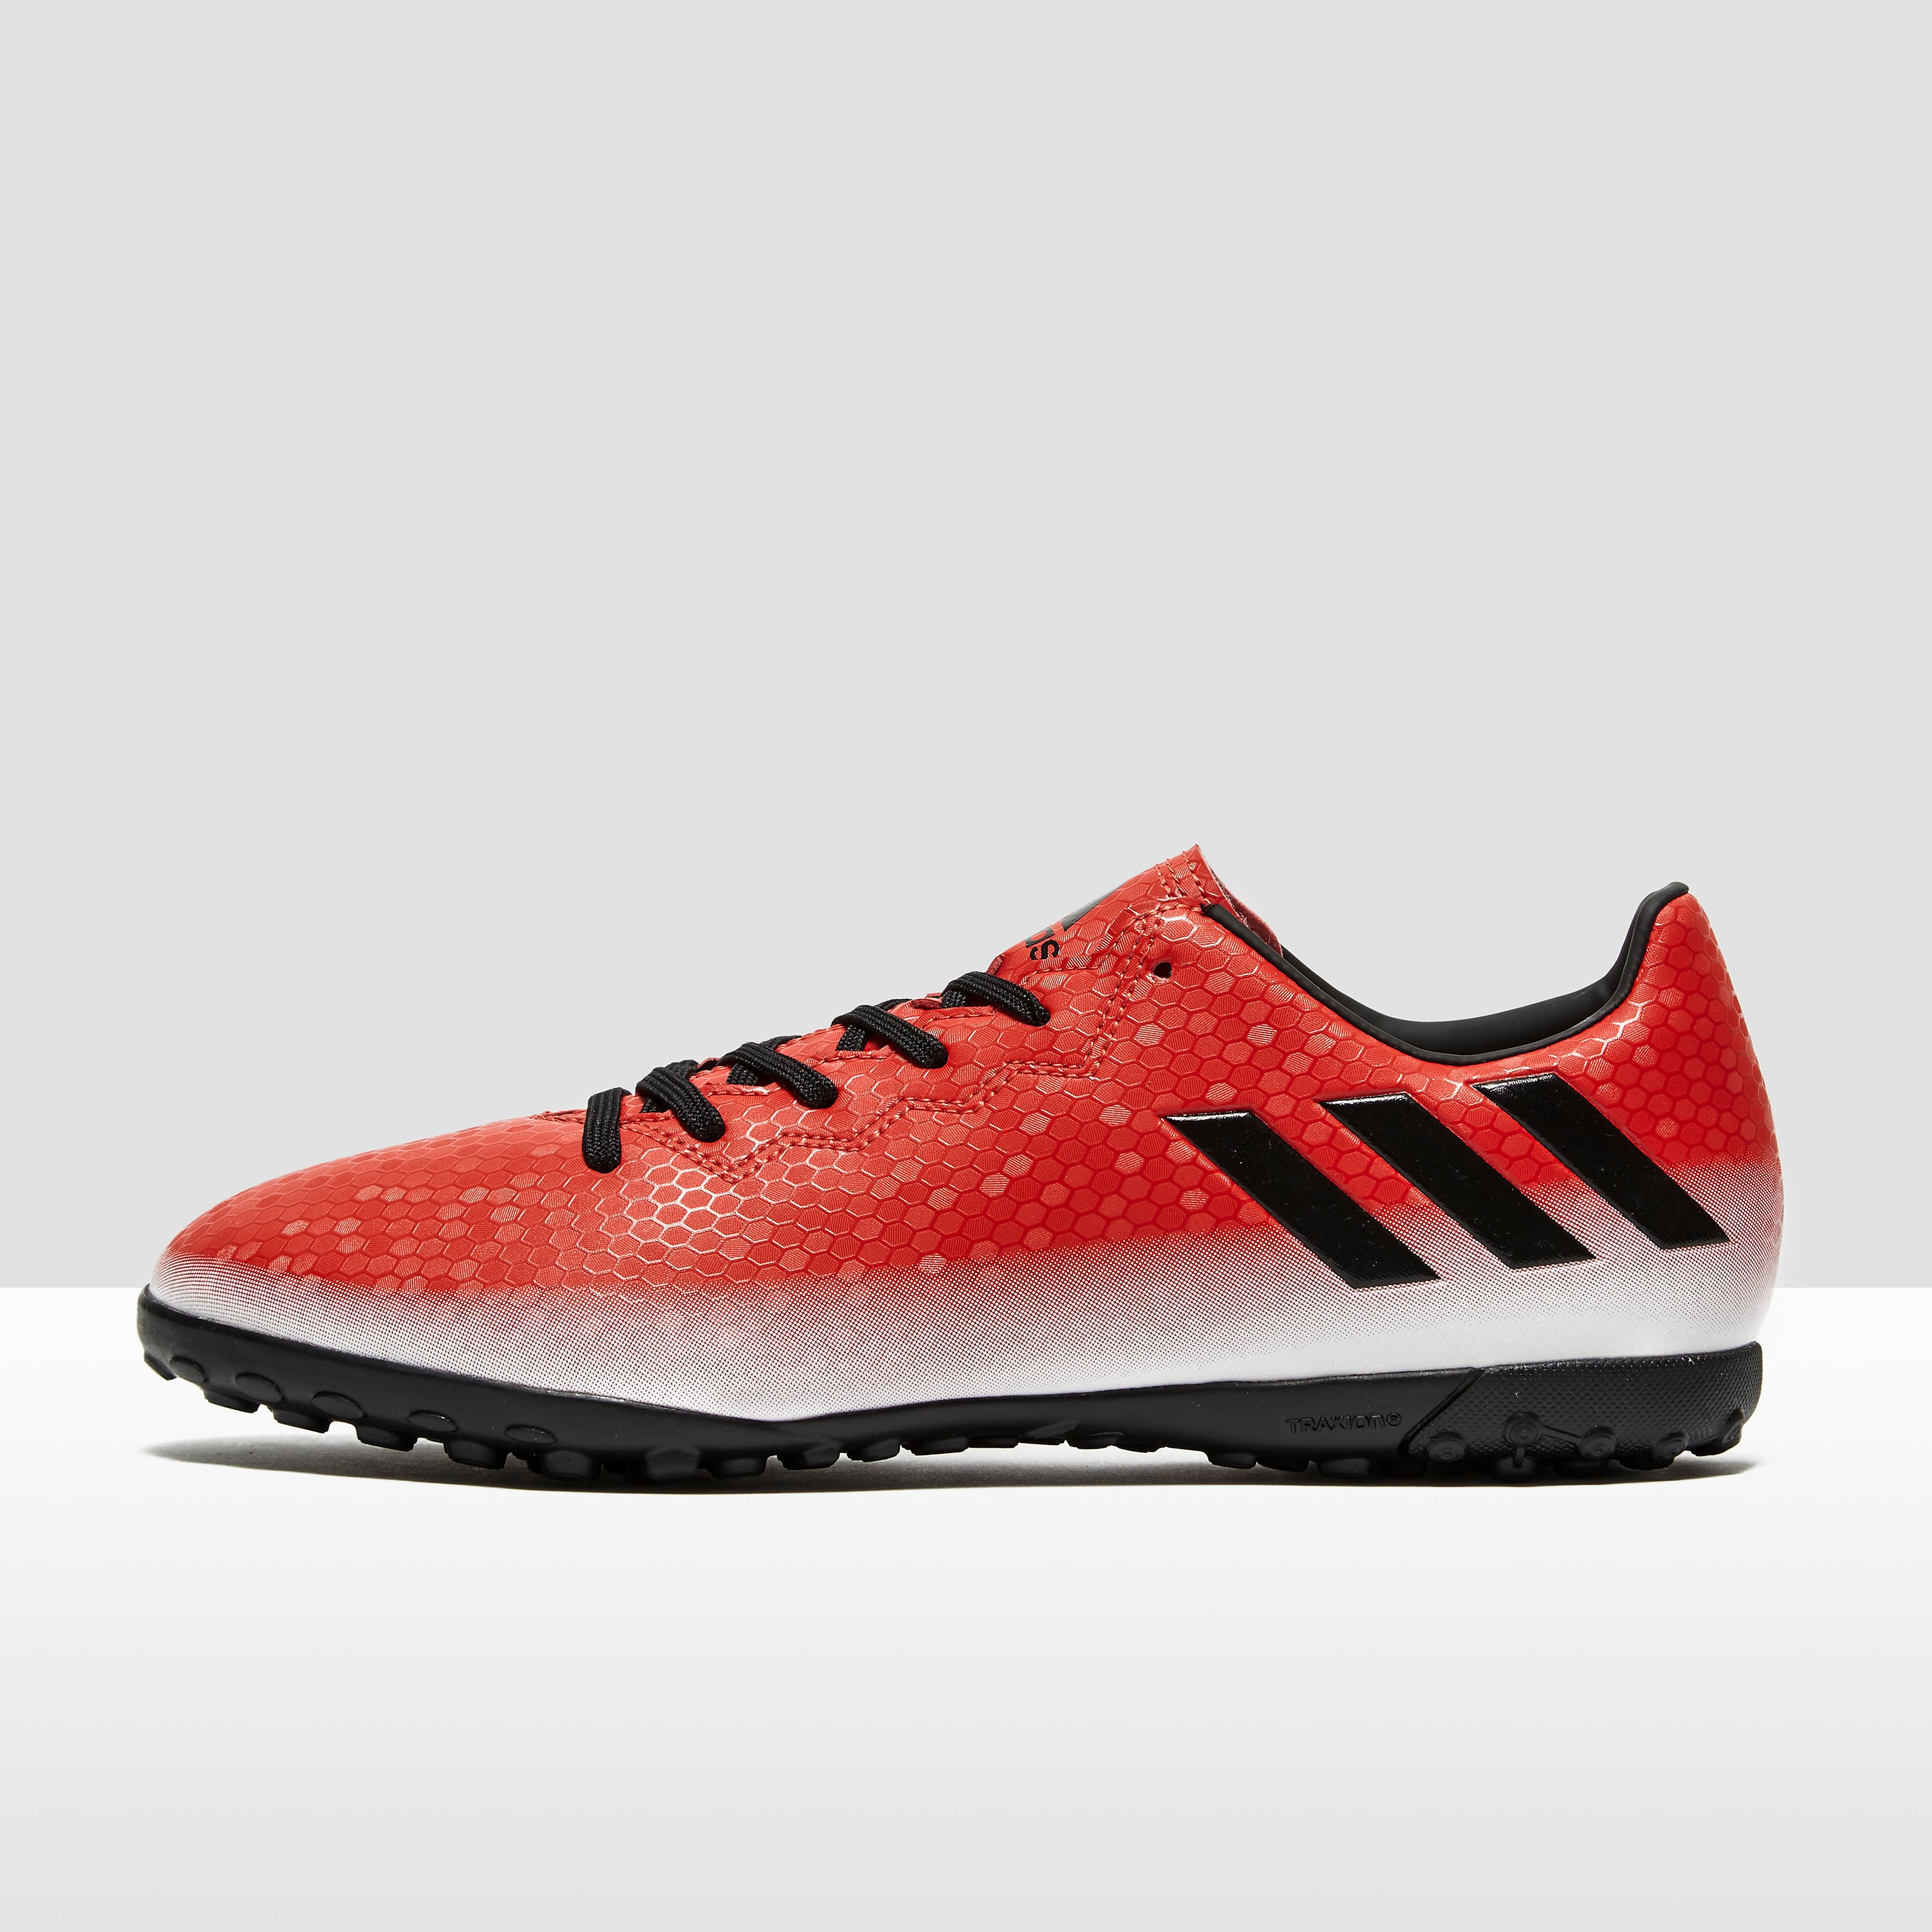 adidas Red Limit Messi 16.4 Turf Football Boots